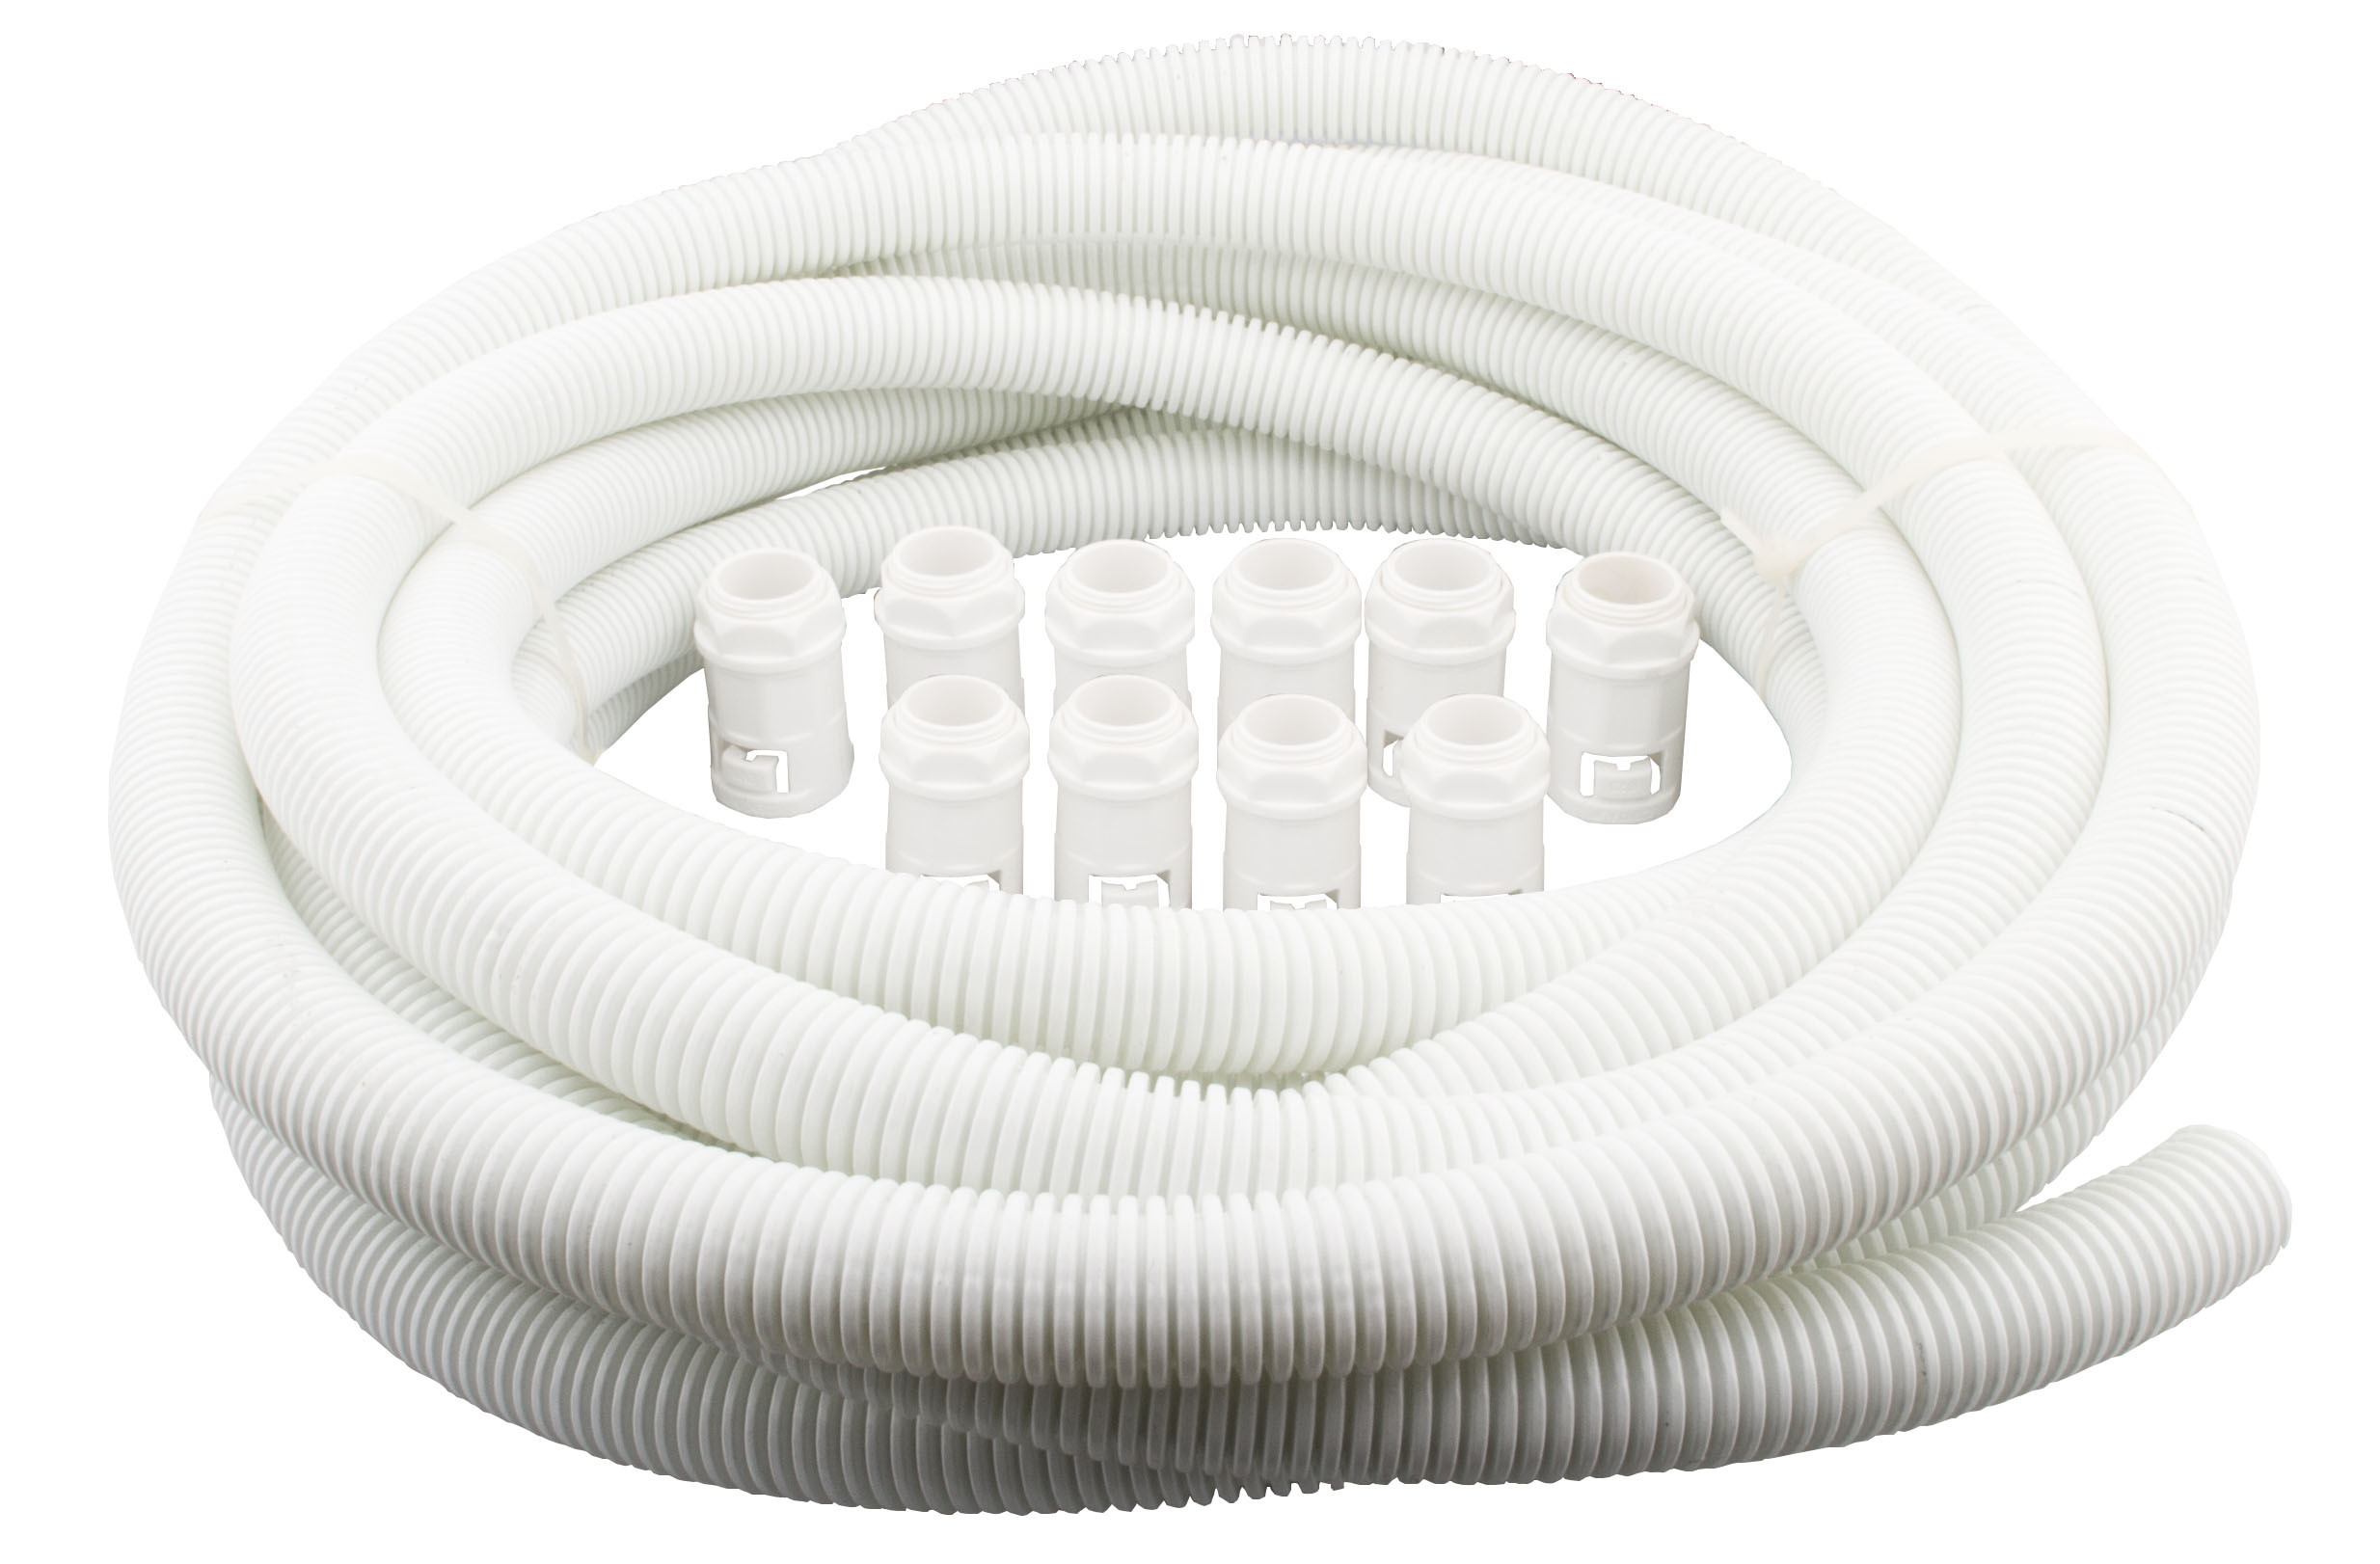 Budget Flexible Conduit Contractor Pack Size 25mm White